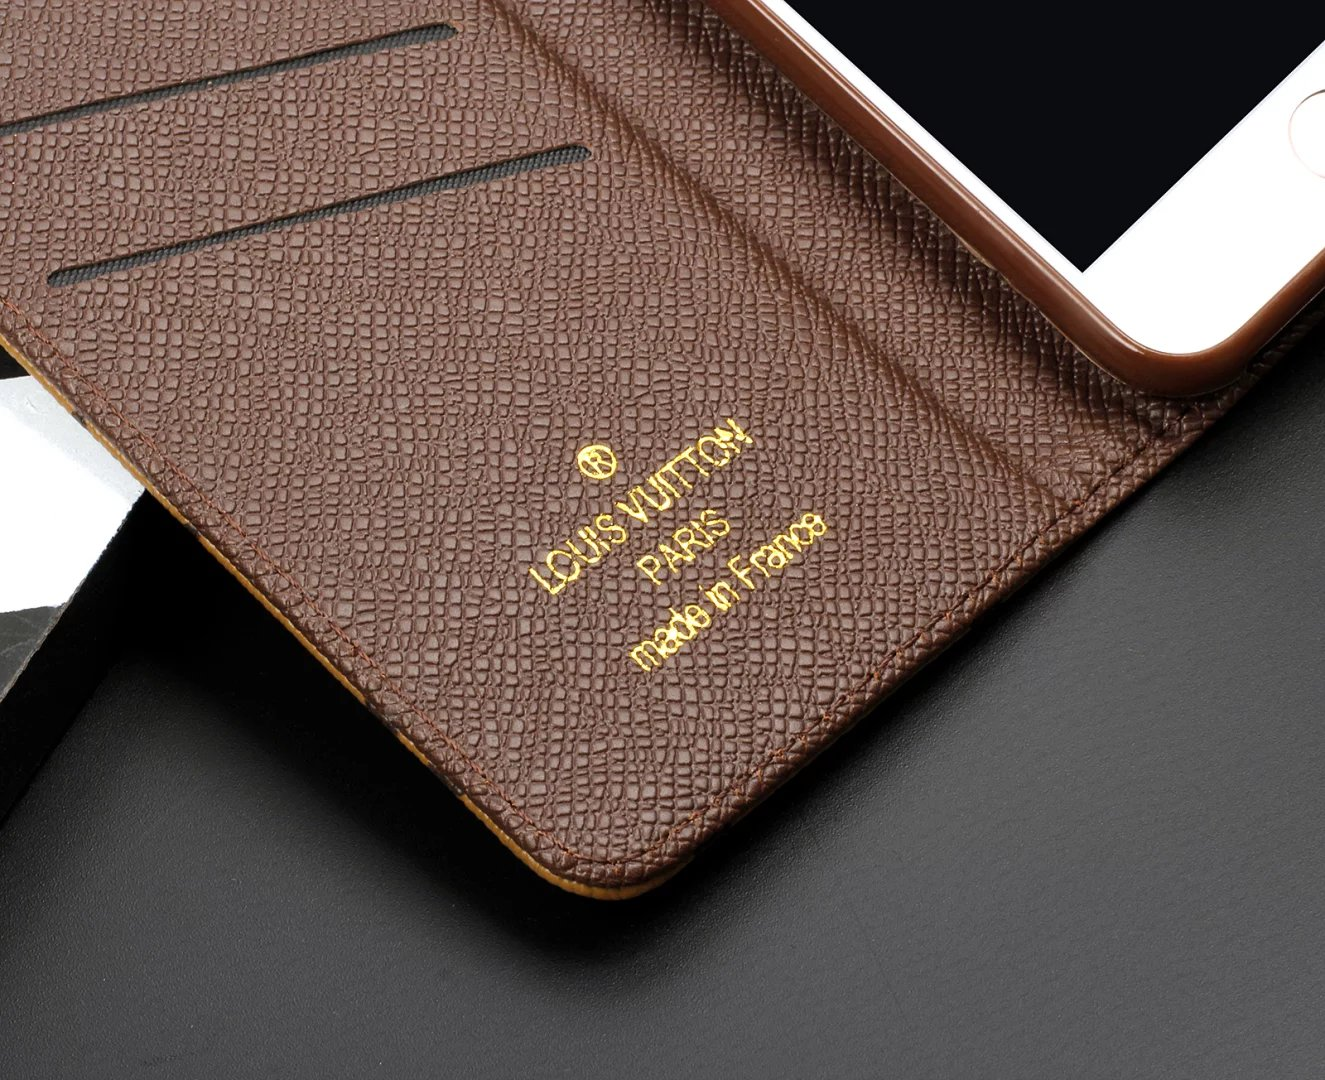 iphone hülle drucken iphone hülle mit eigenem foto Louis Vuitton iphone7 Plus hülle iphone ca7 gestalten s7 handyhülle 7lbst gestalten handy cover outdoor cover iphone 7 Plus iphonehülle 7 wann kommt das iphone 6